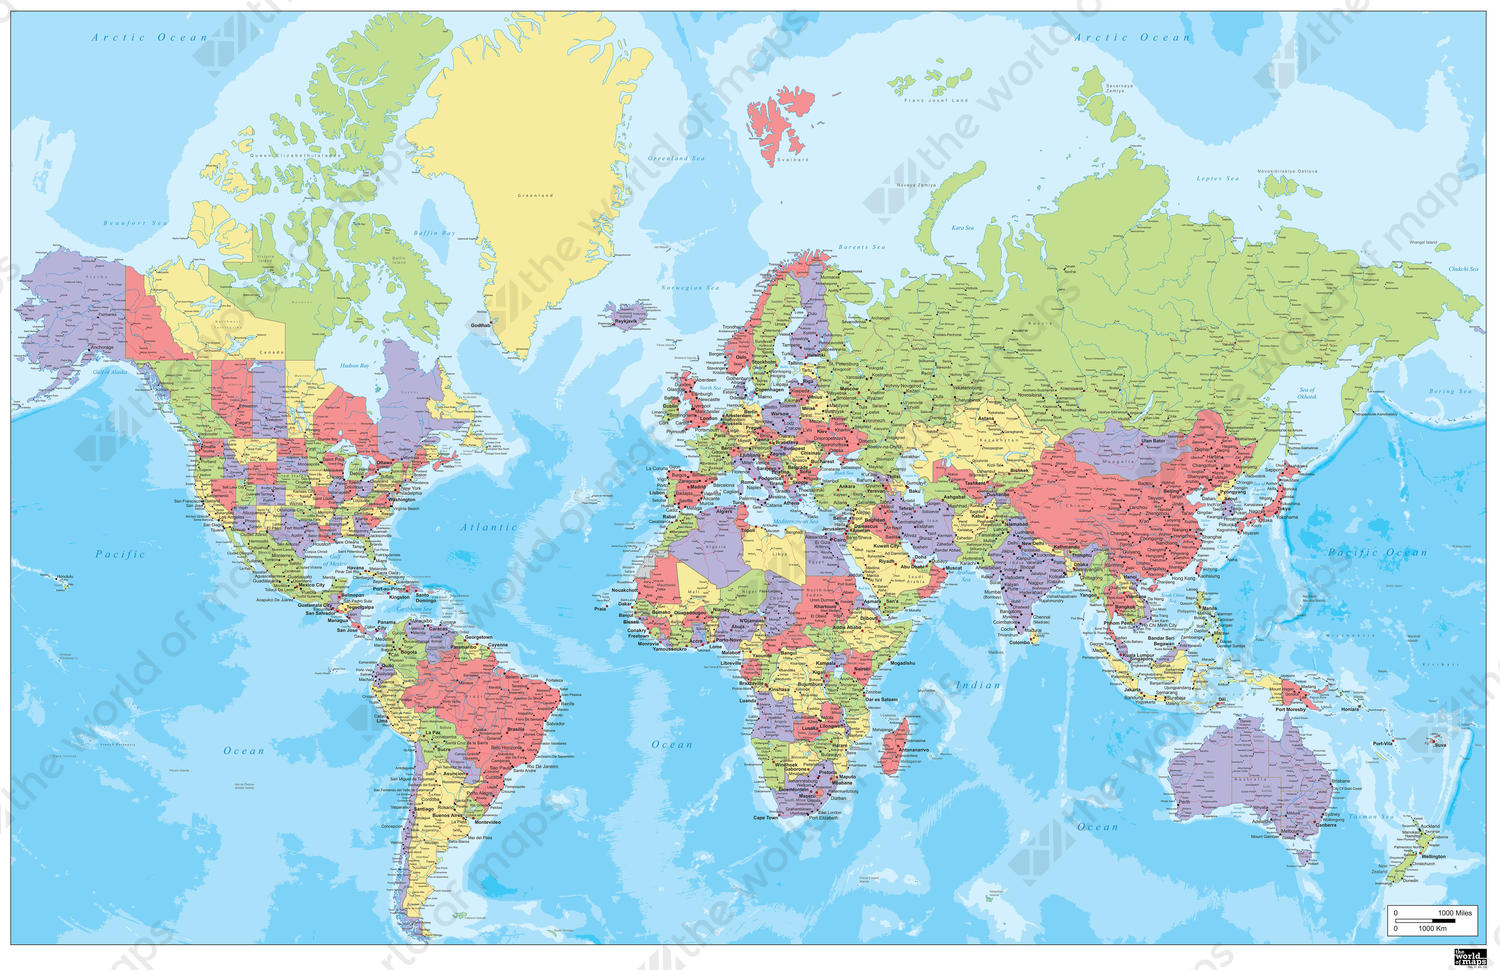 Digital world map in english 318 the world of maps political world map with many cities gumiabroncs Image collections